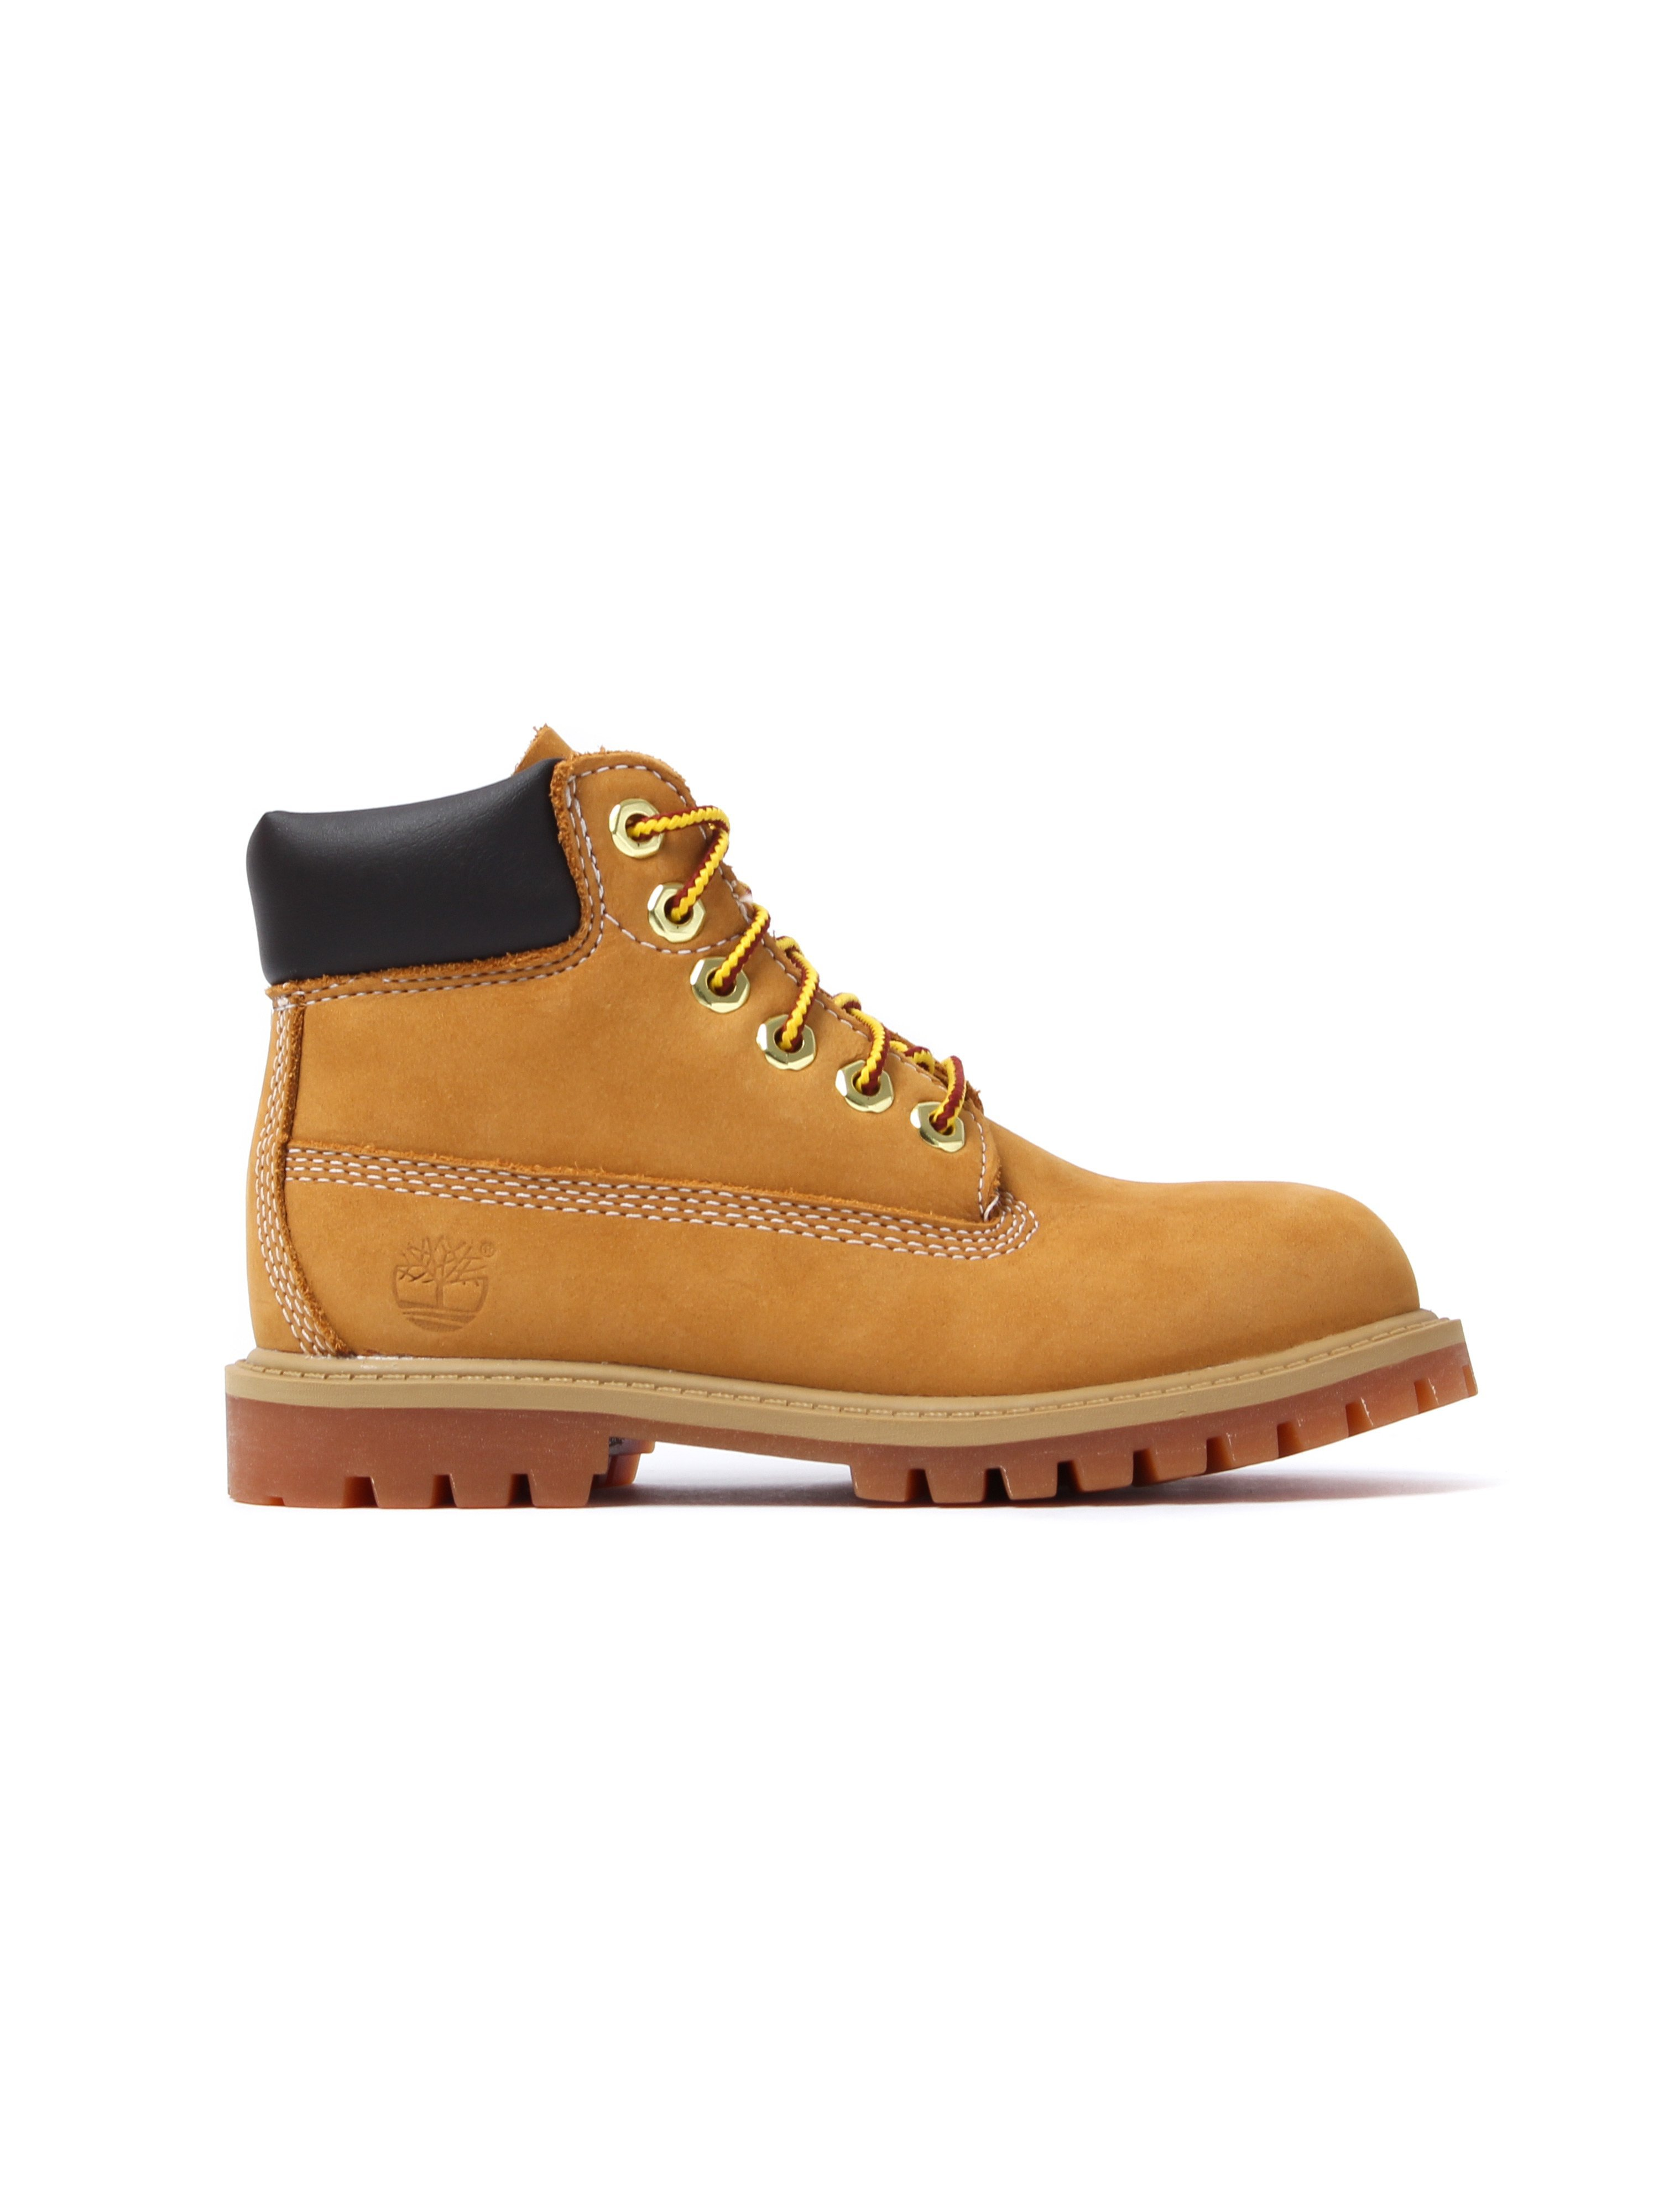 Timberland Infant 6 Inch Premium - Wheat Nubuck